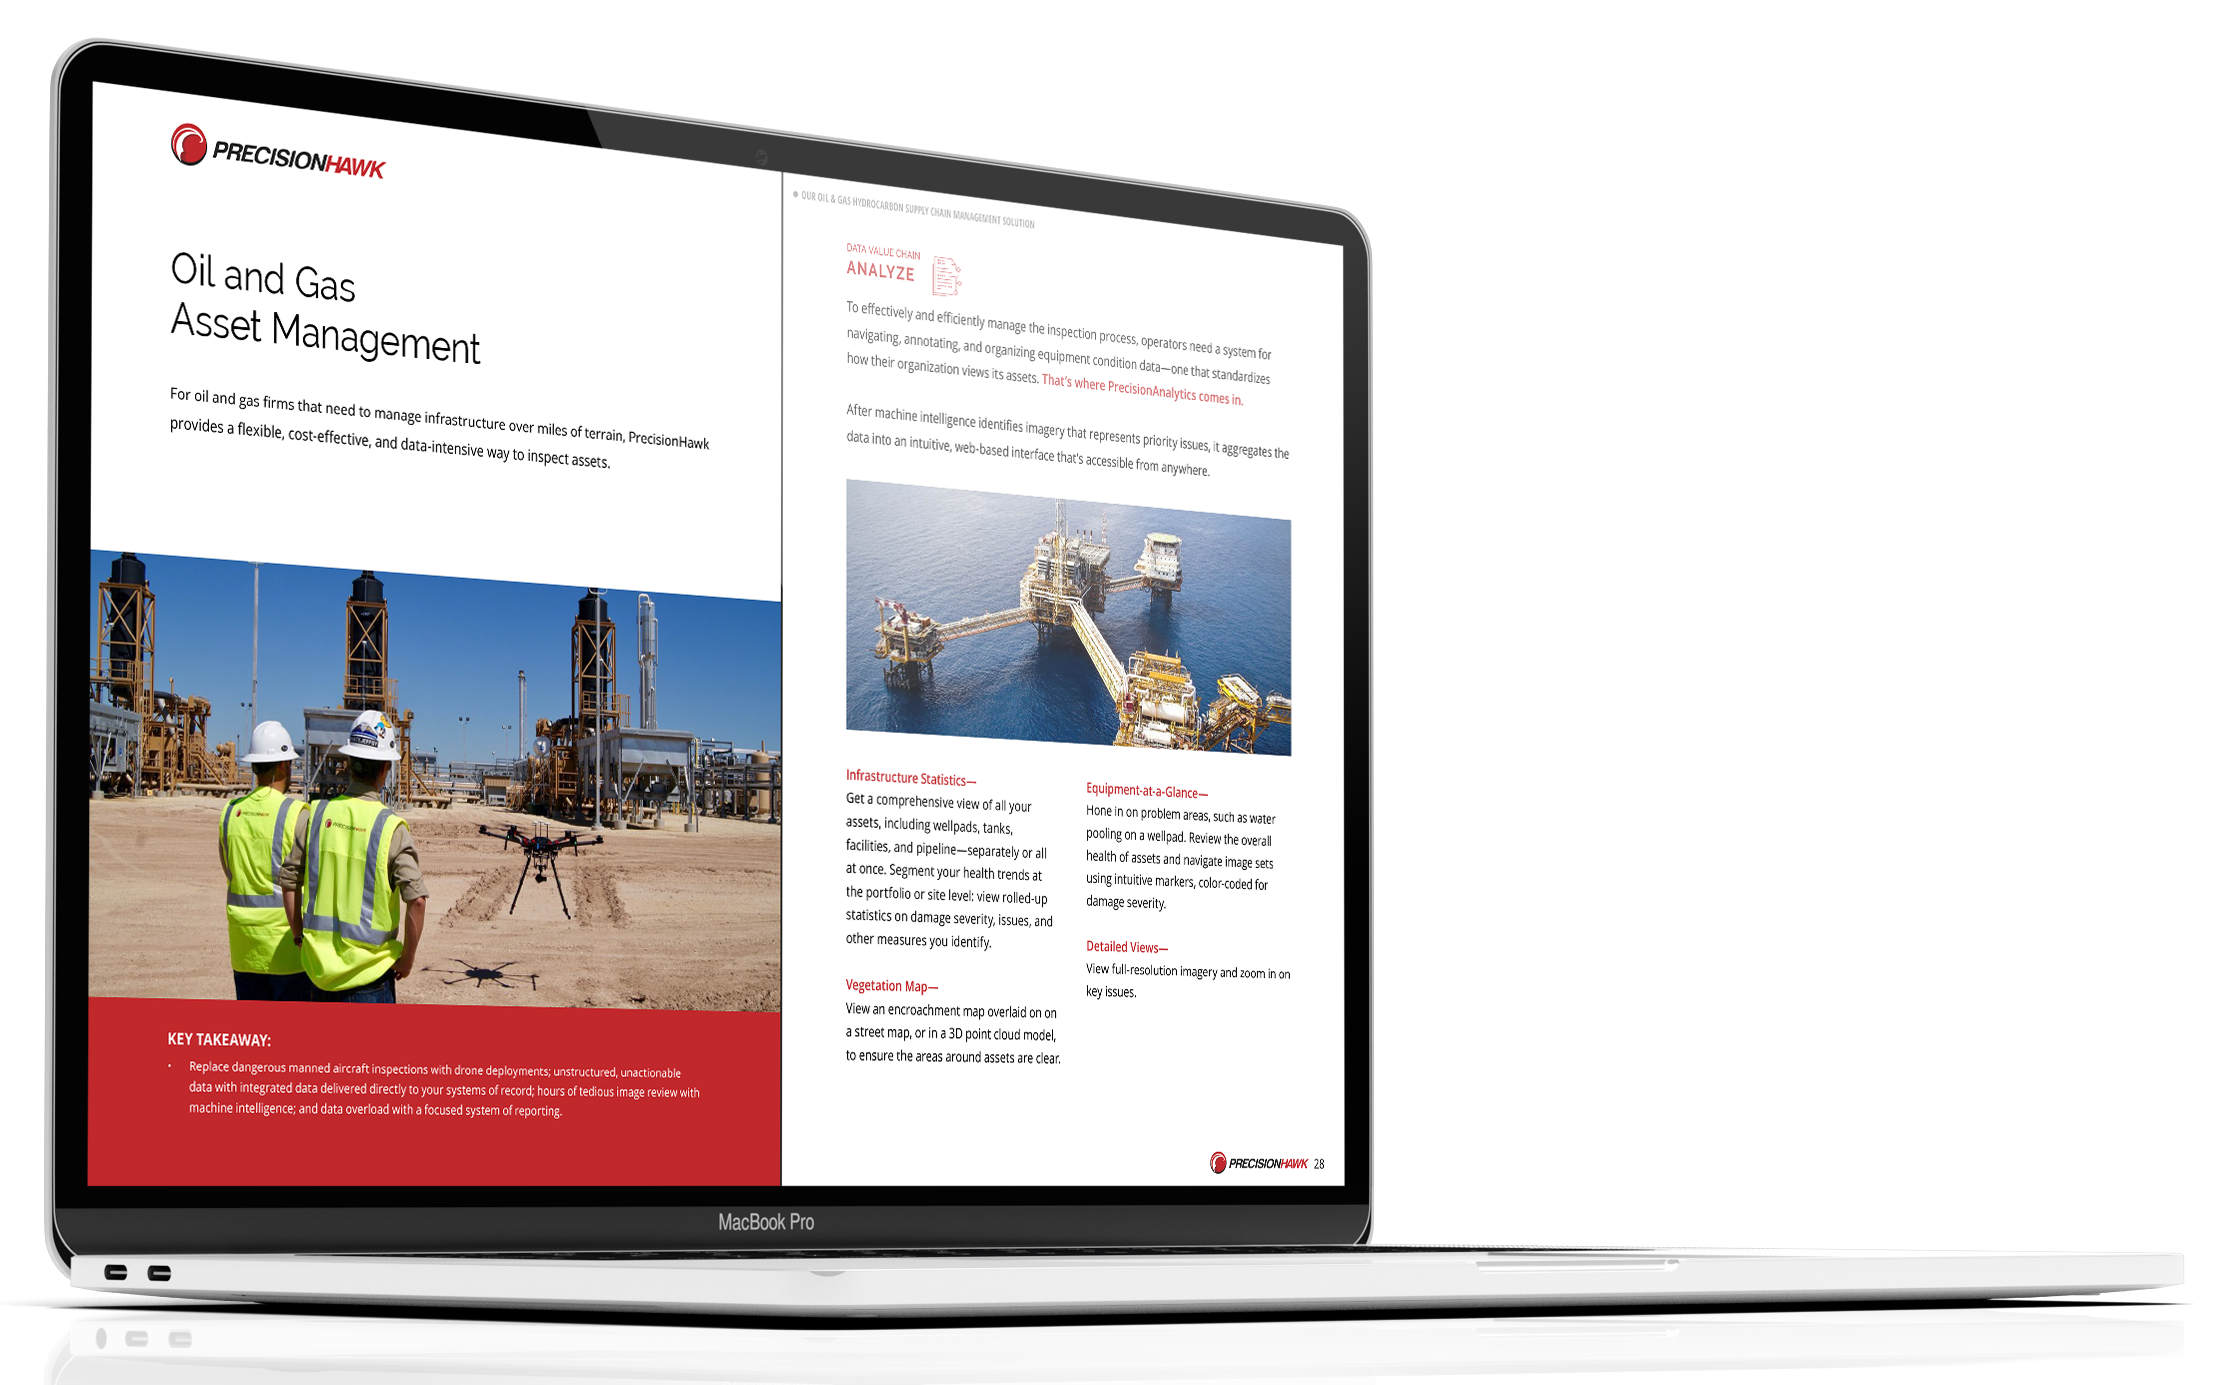 Drone-based Inspections for Oil and Gas